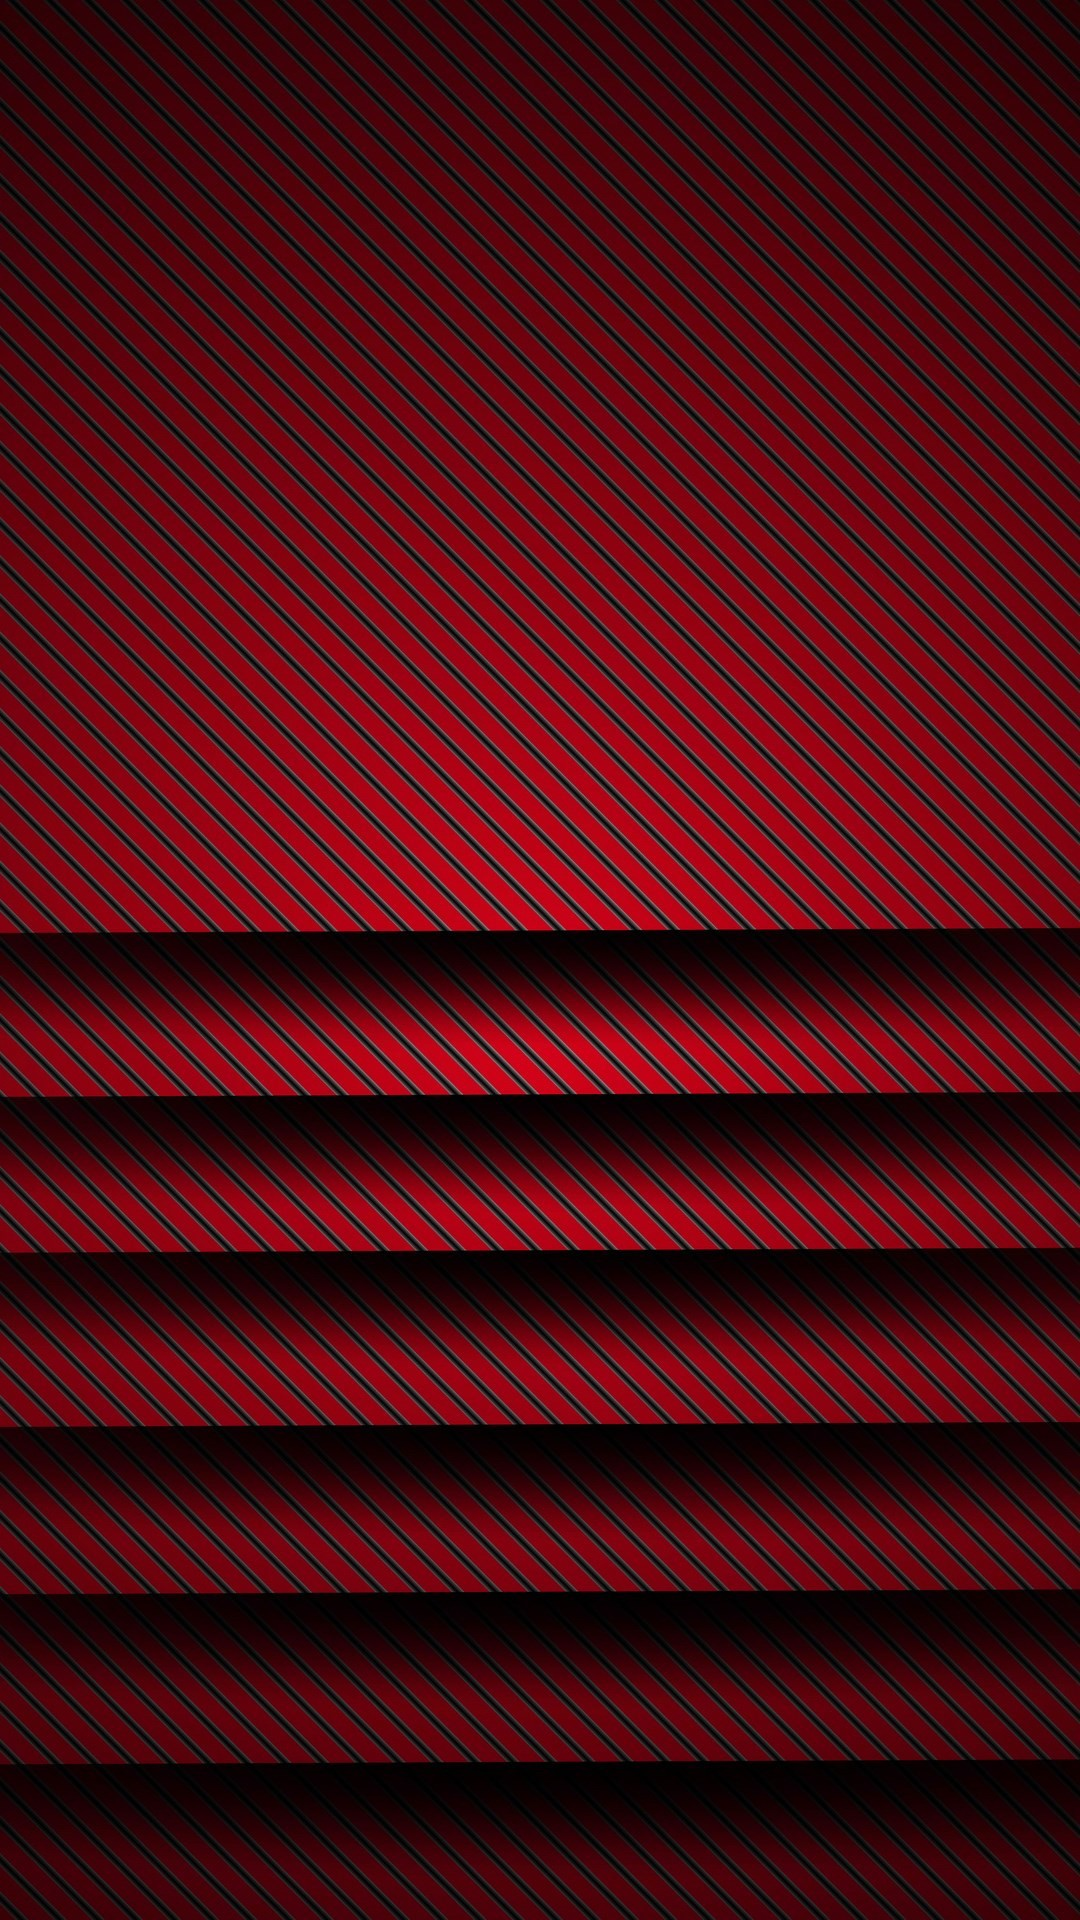 1080x1920 Download Red Paper Texture Pattern IPhone Wallpapers Tap To See More Backgrounds